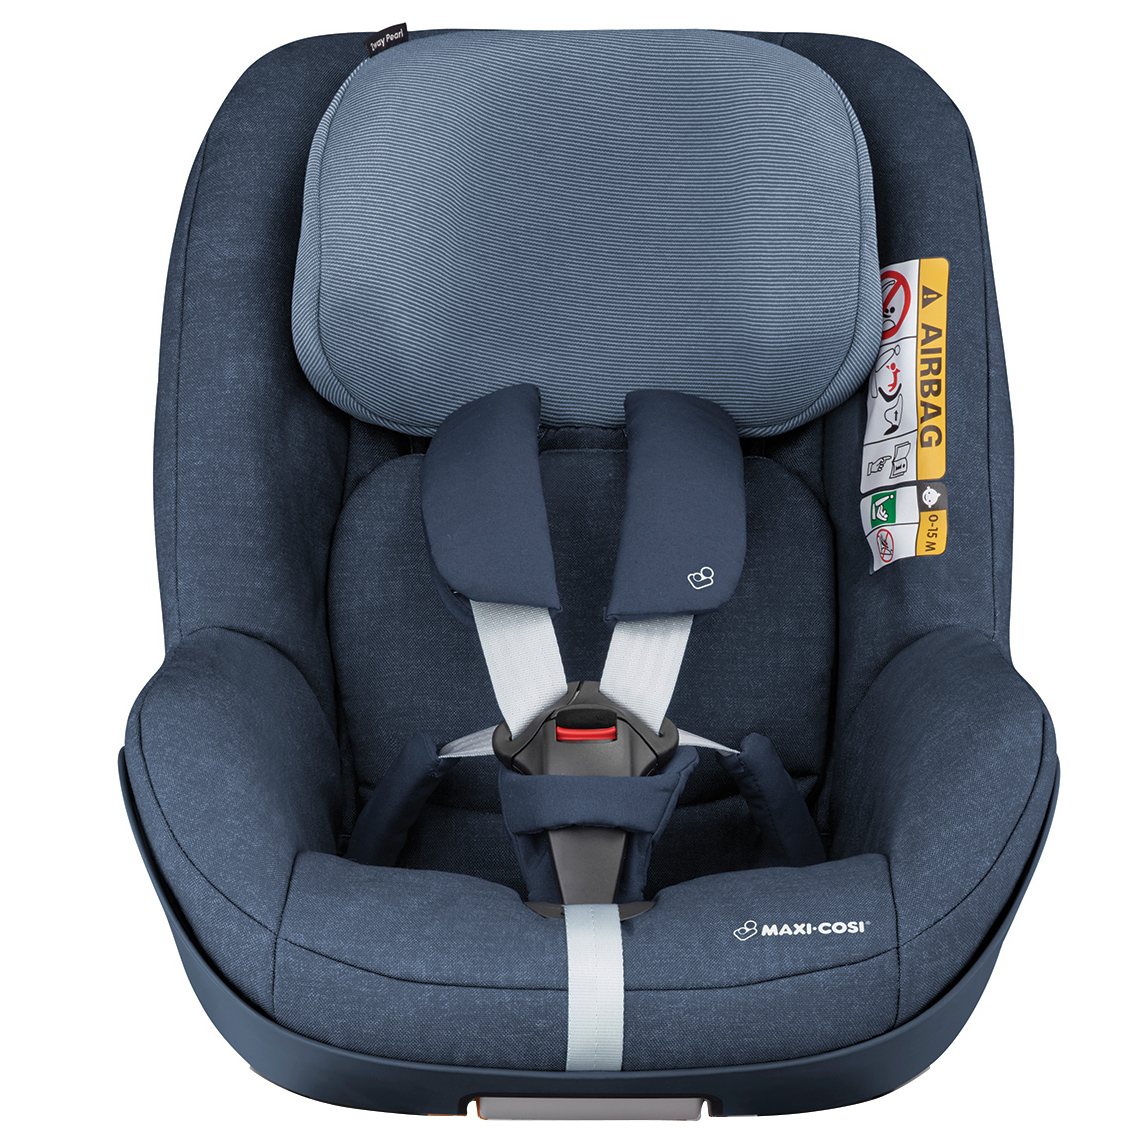 maxi cosi child car seat 2way pearl 2018 nomad blue buy at kidsroom car seats. Black Bedroom Furniture Sets. Home Design Ideas